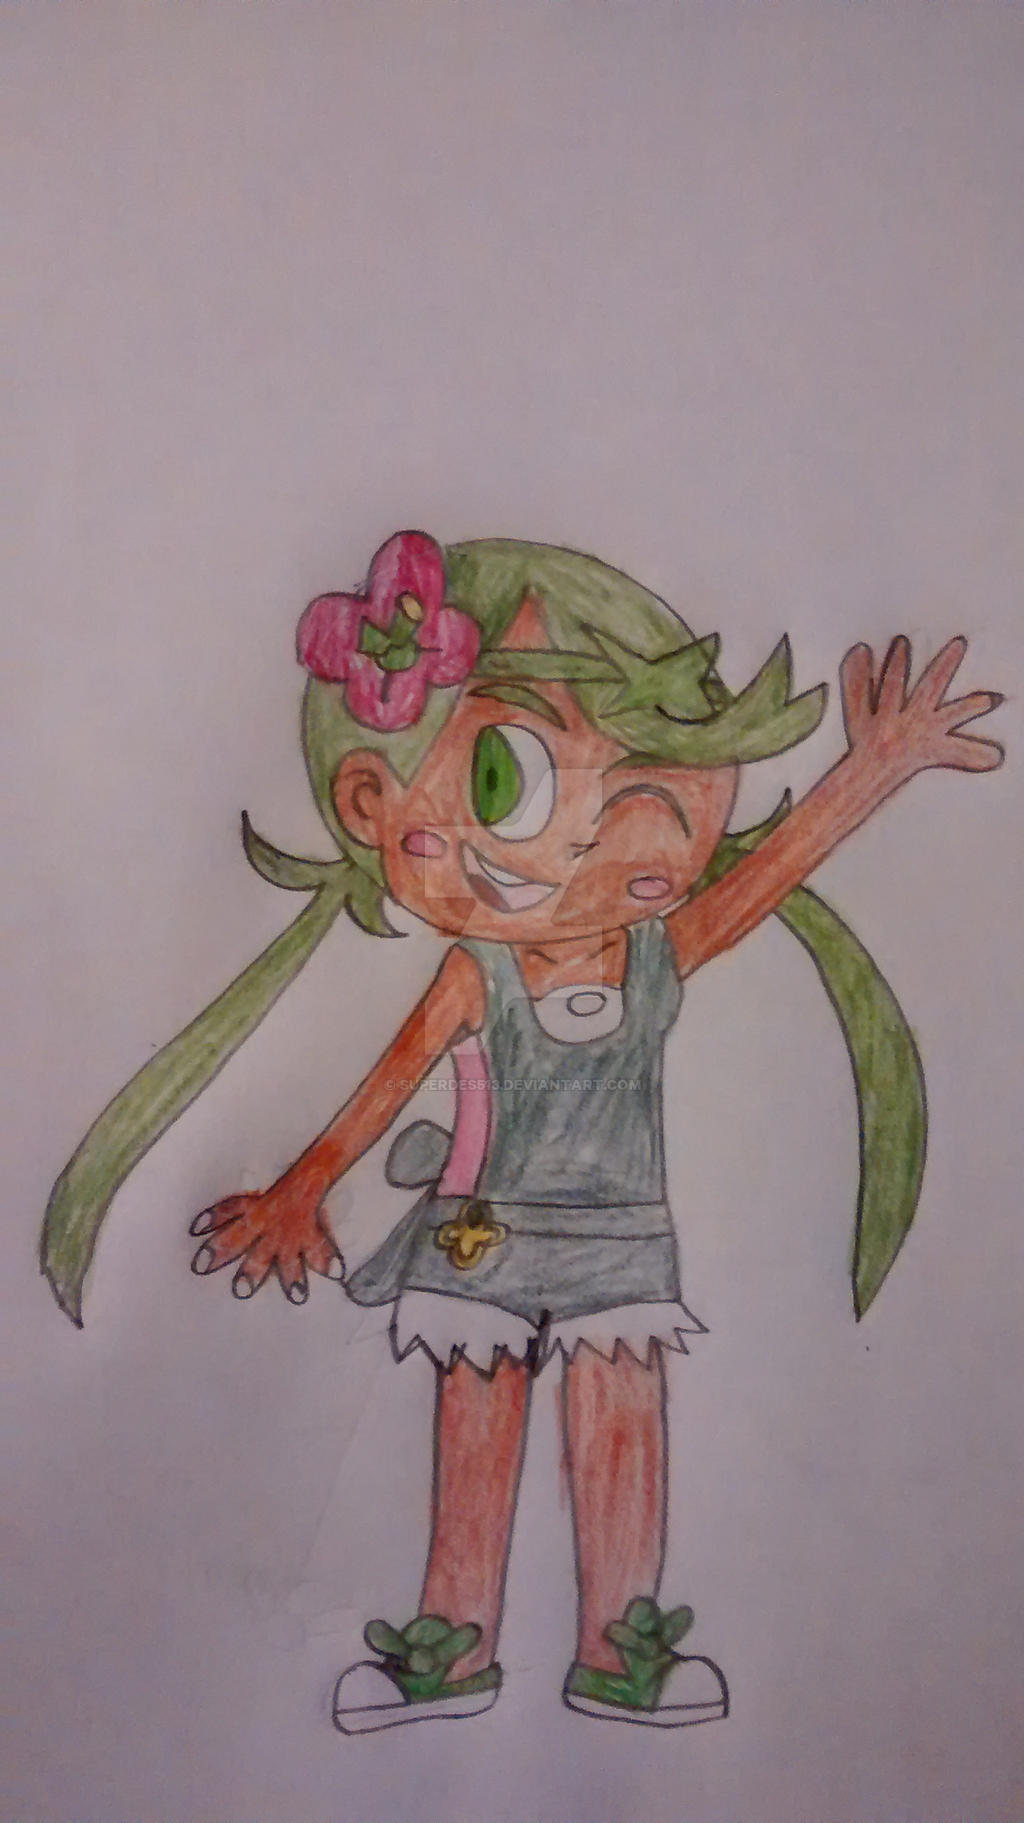 Mallow by superdes513